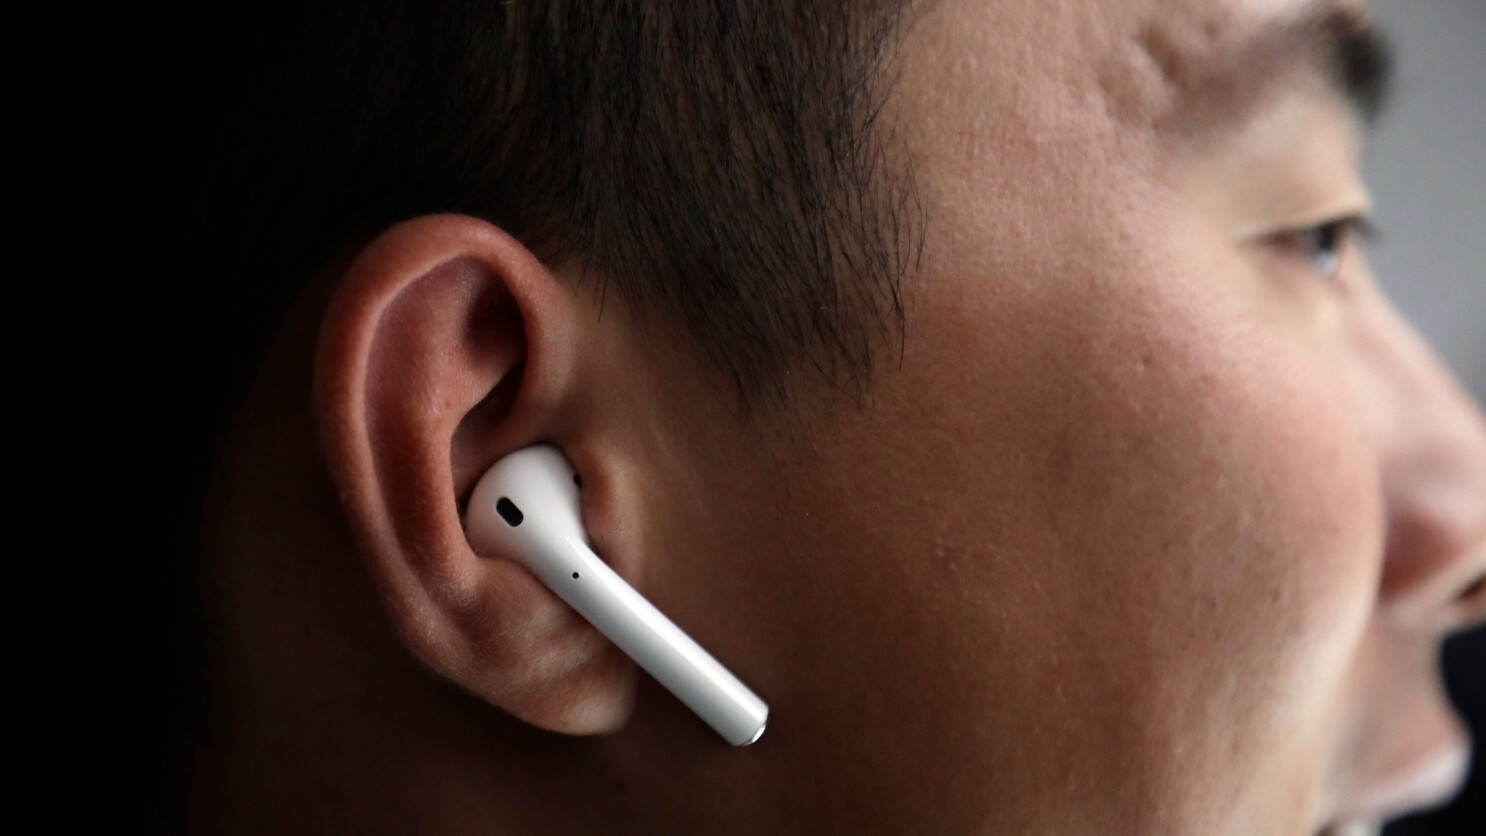 No Apple S New Airpods Won T Give You Cancer Experts Say Los Angeles Times